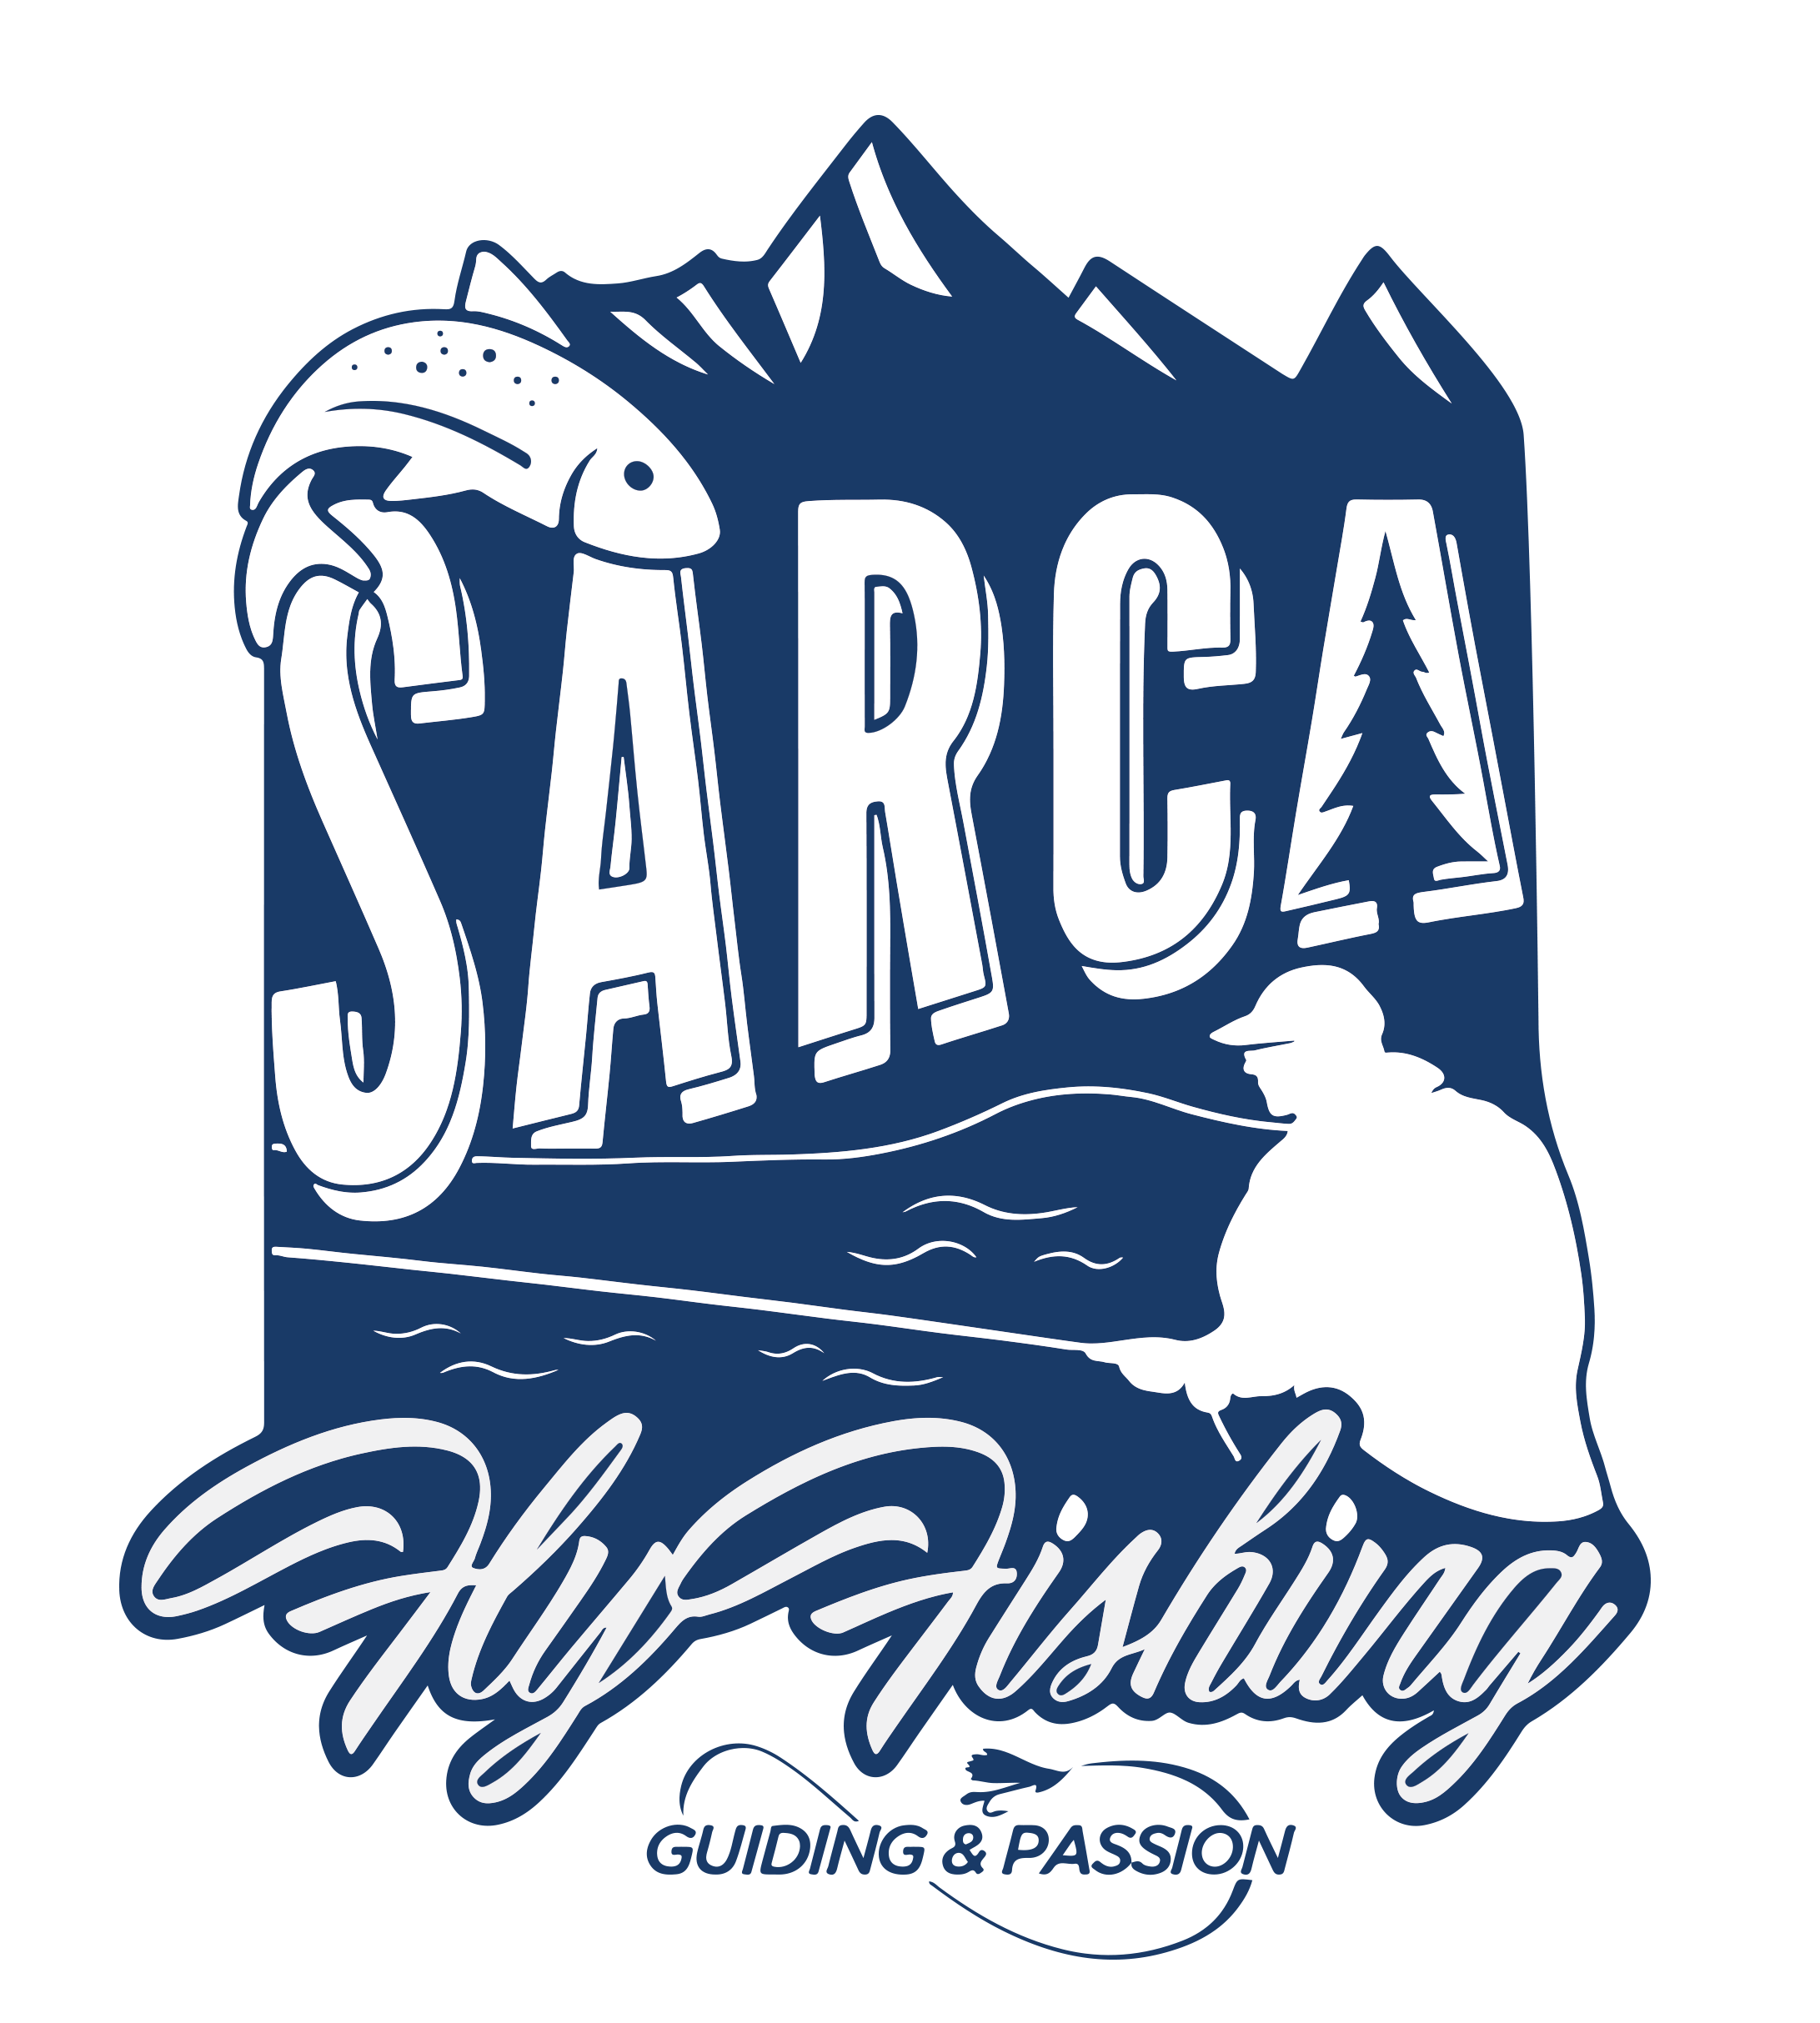 sarcaflyfishing.it